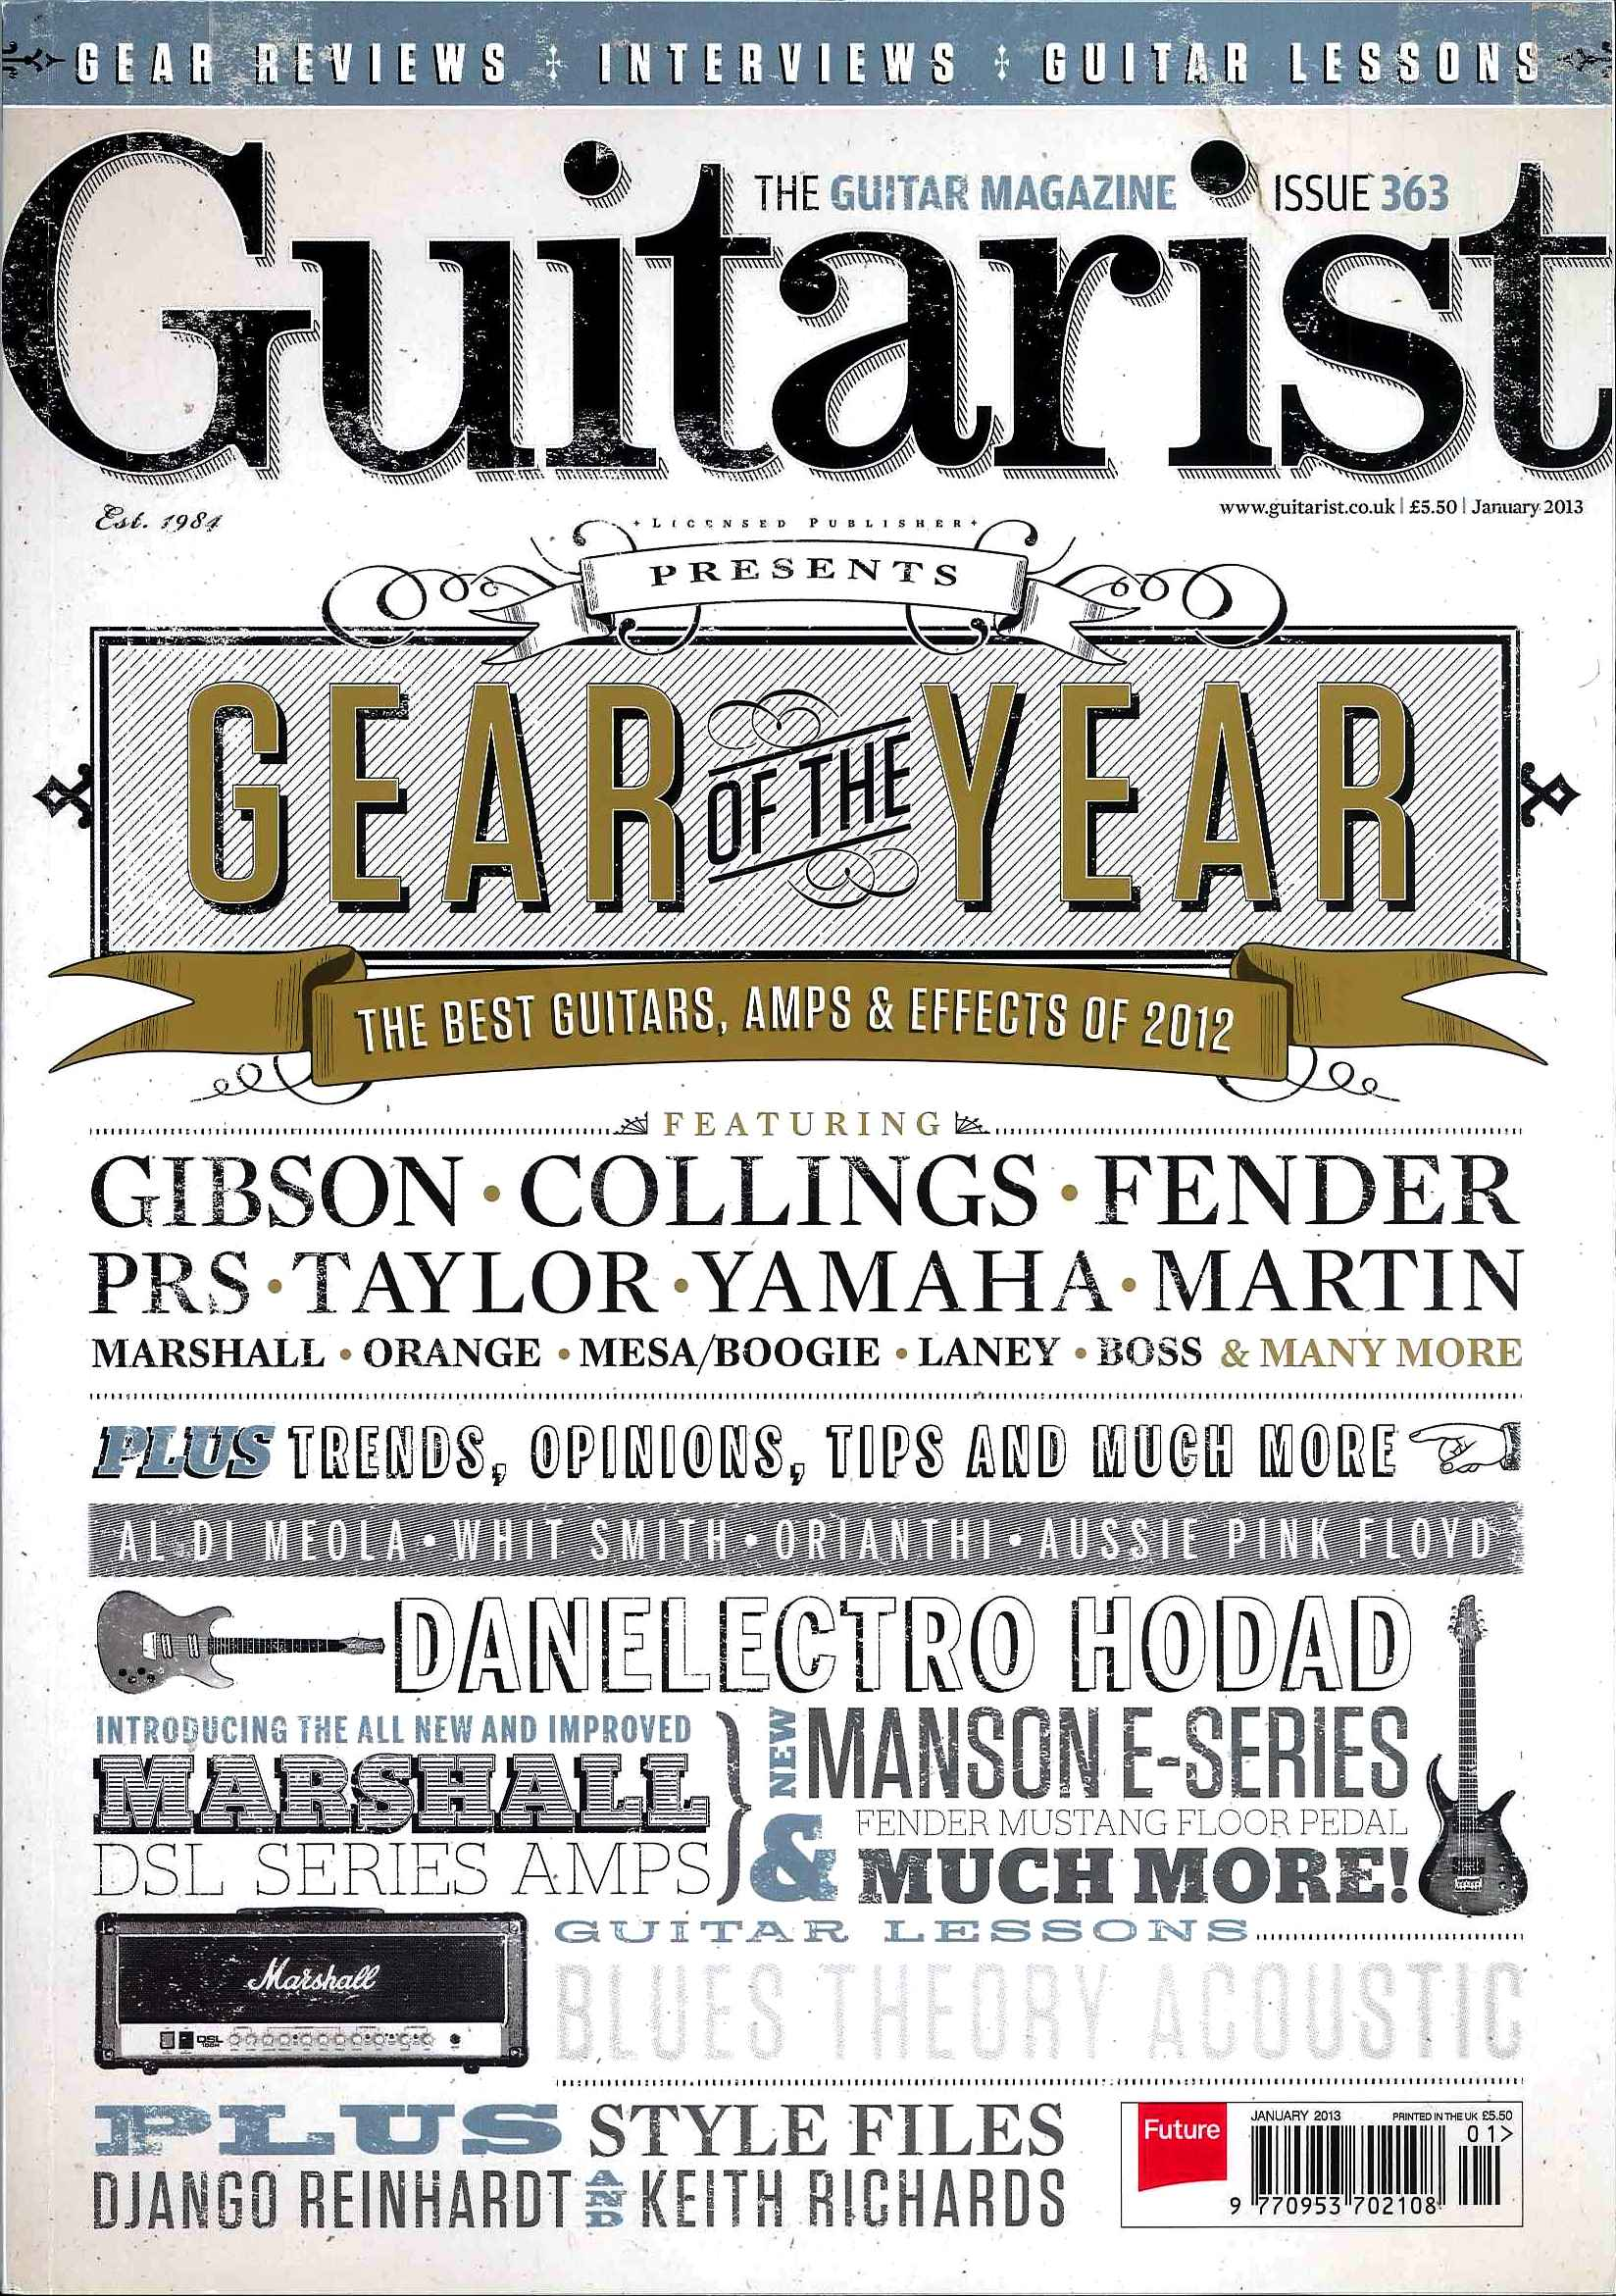 Guitarist Magazine_January 2013_Robert Cray Album of The Year_1